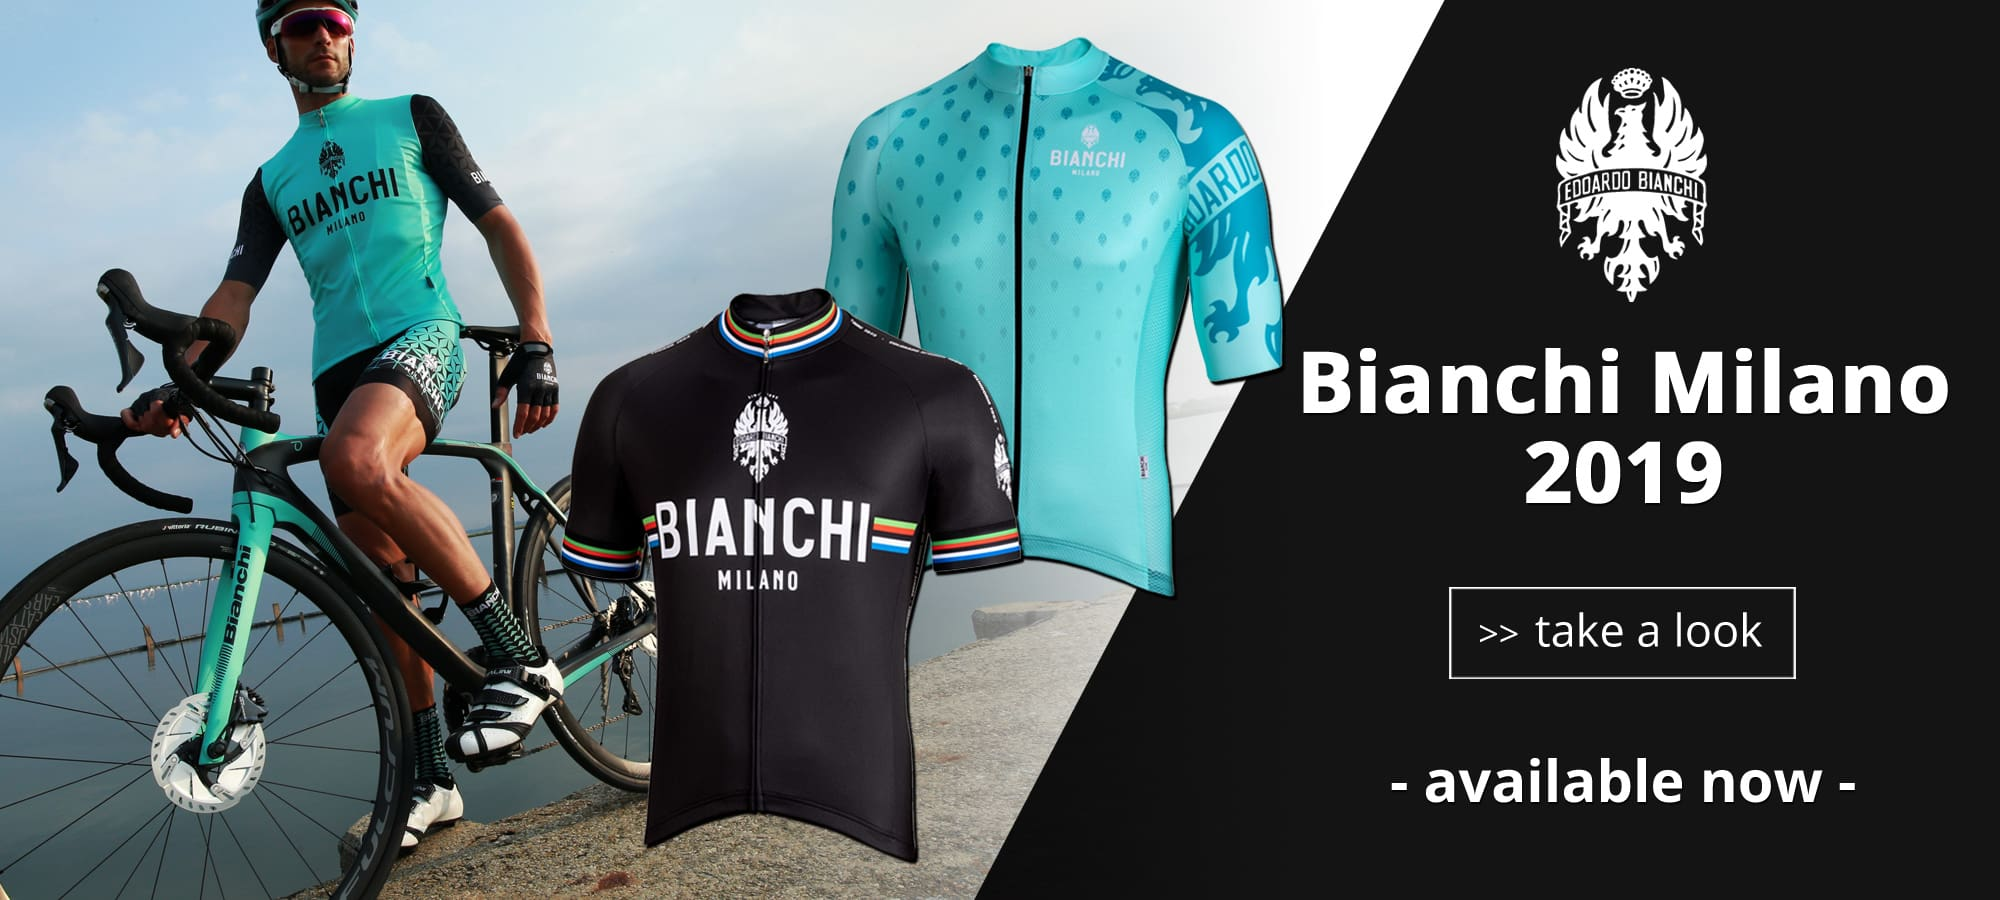 Bianchi Milano spring / summer 2019 available now